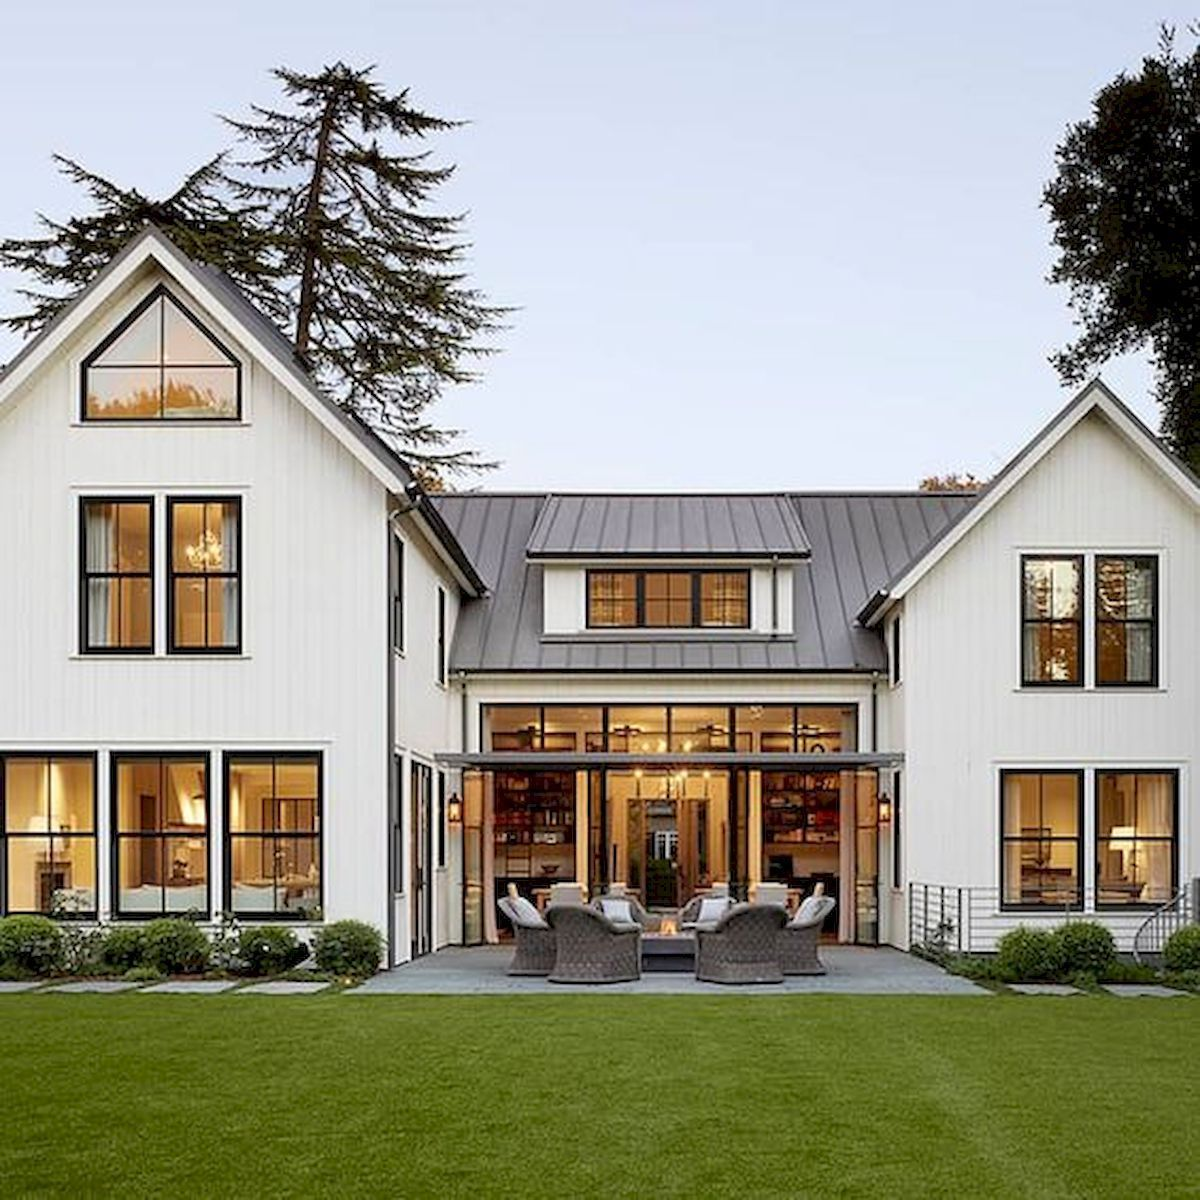 33 Best Modern Farmhouse Exterior Design Ideas #modernfarmhouse